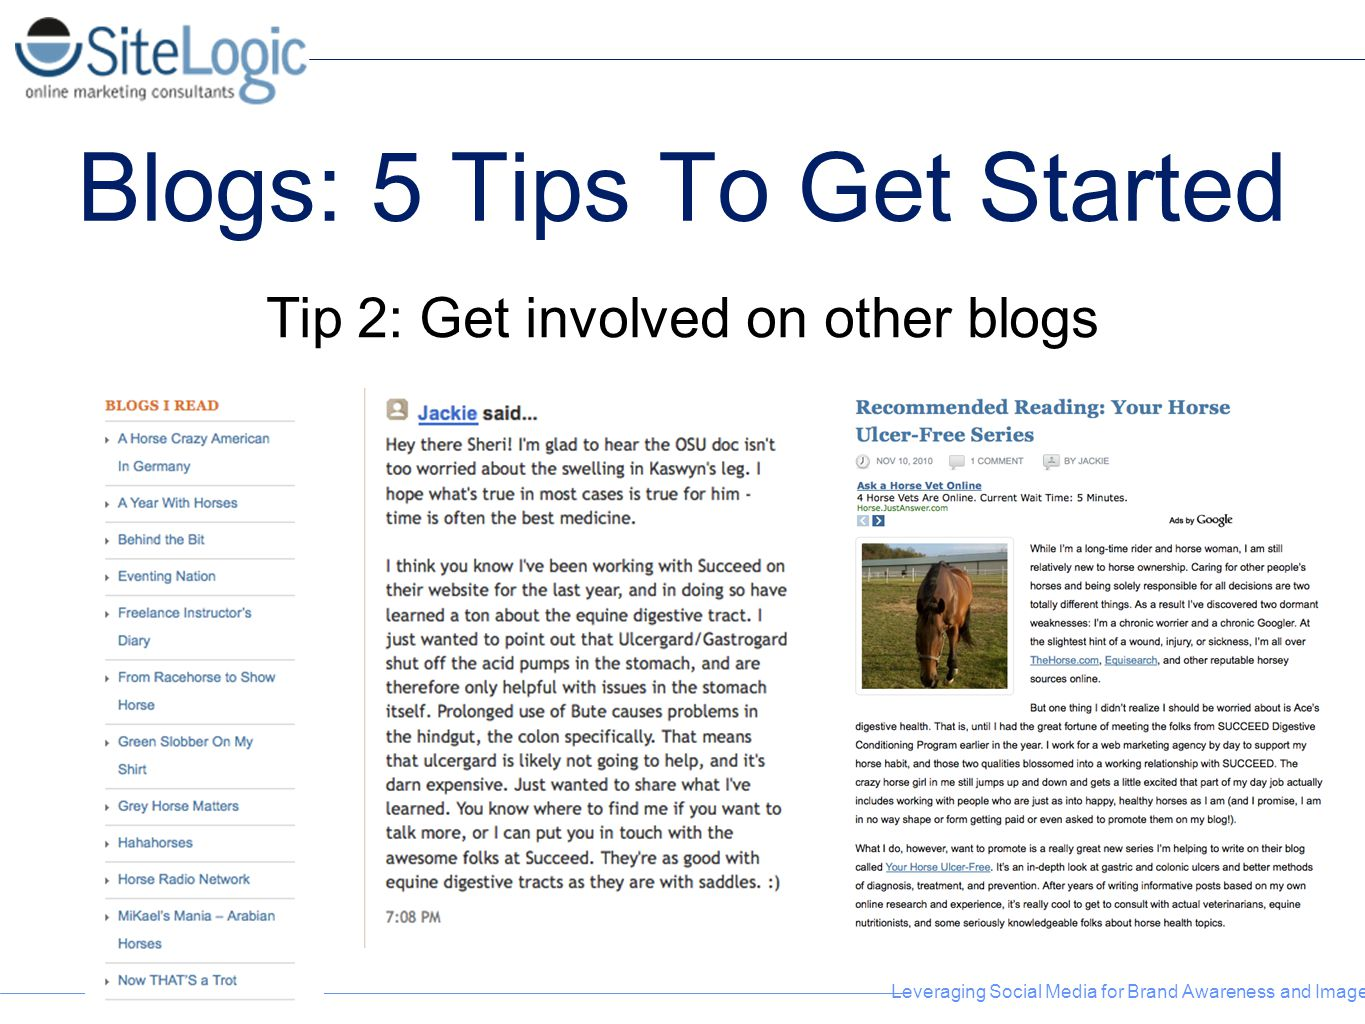 Leveraging Social Media for Brand Awareness and Image Blogs: 5 Tips To Get Started Tip 2: Get involved on other blogs